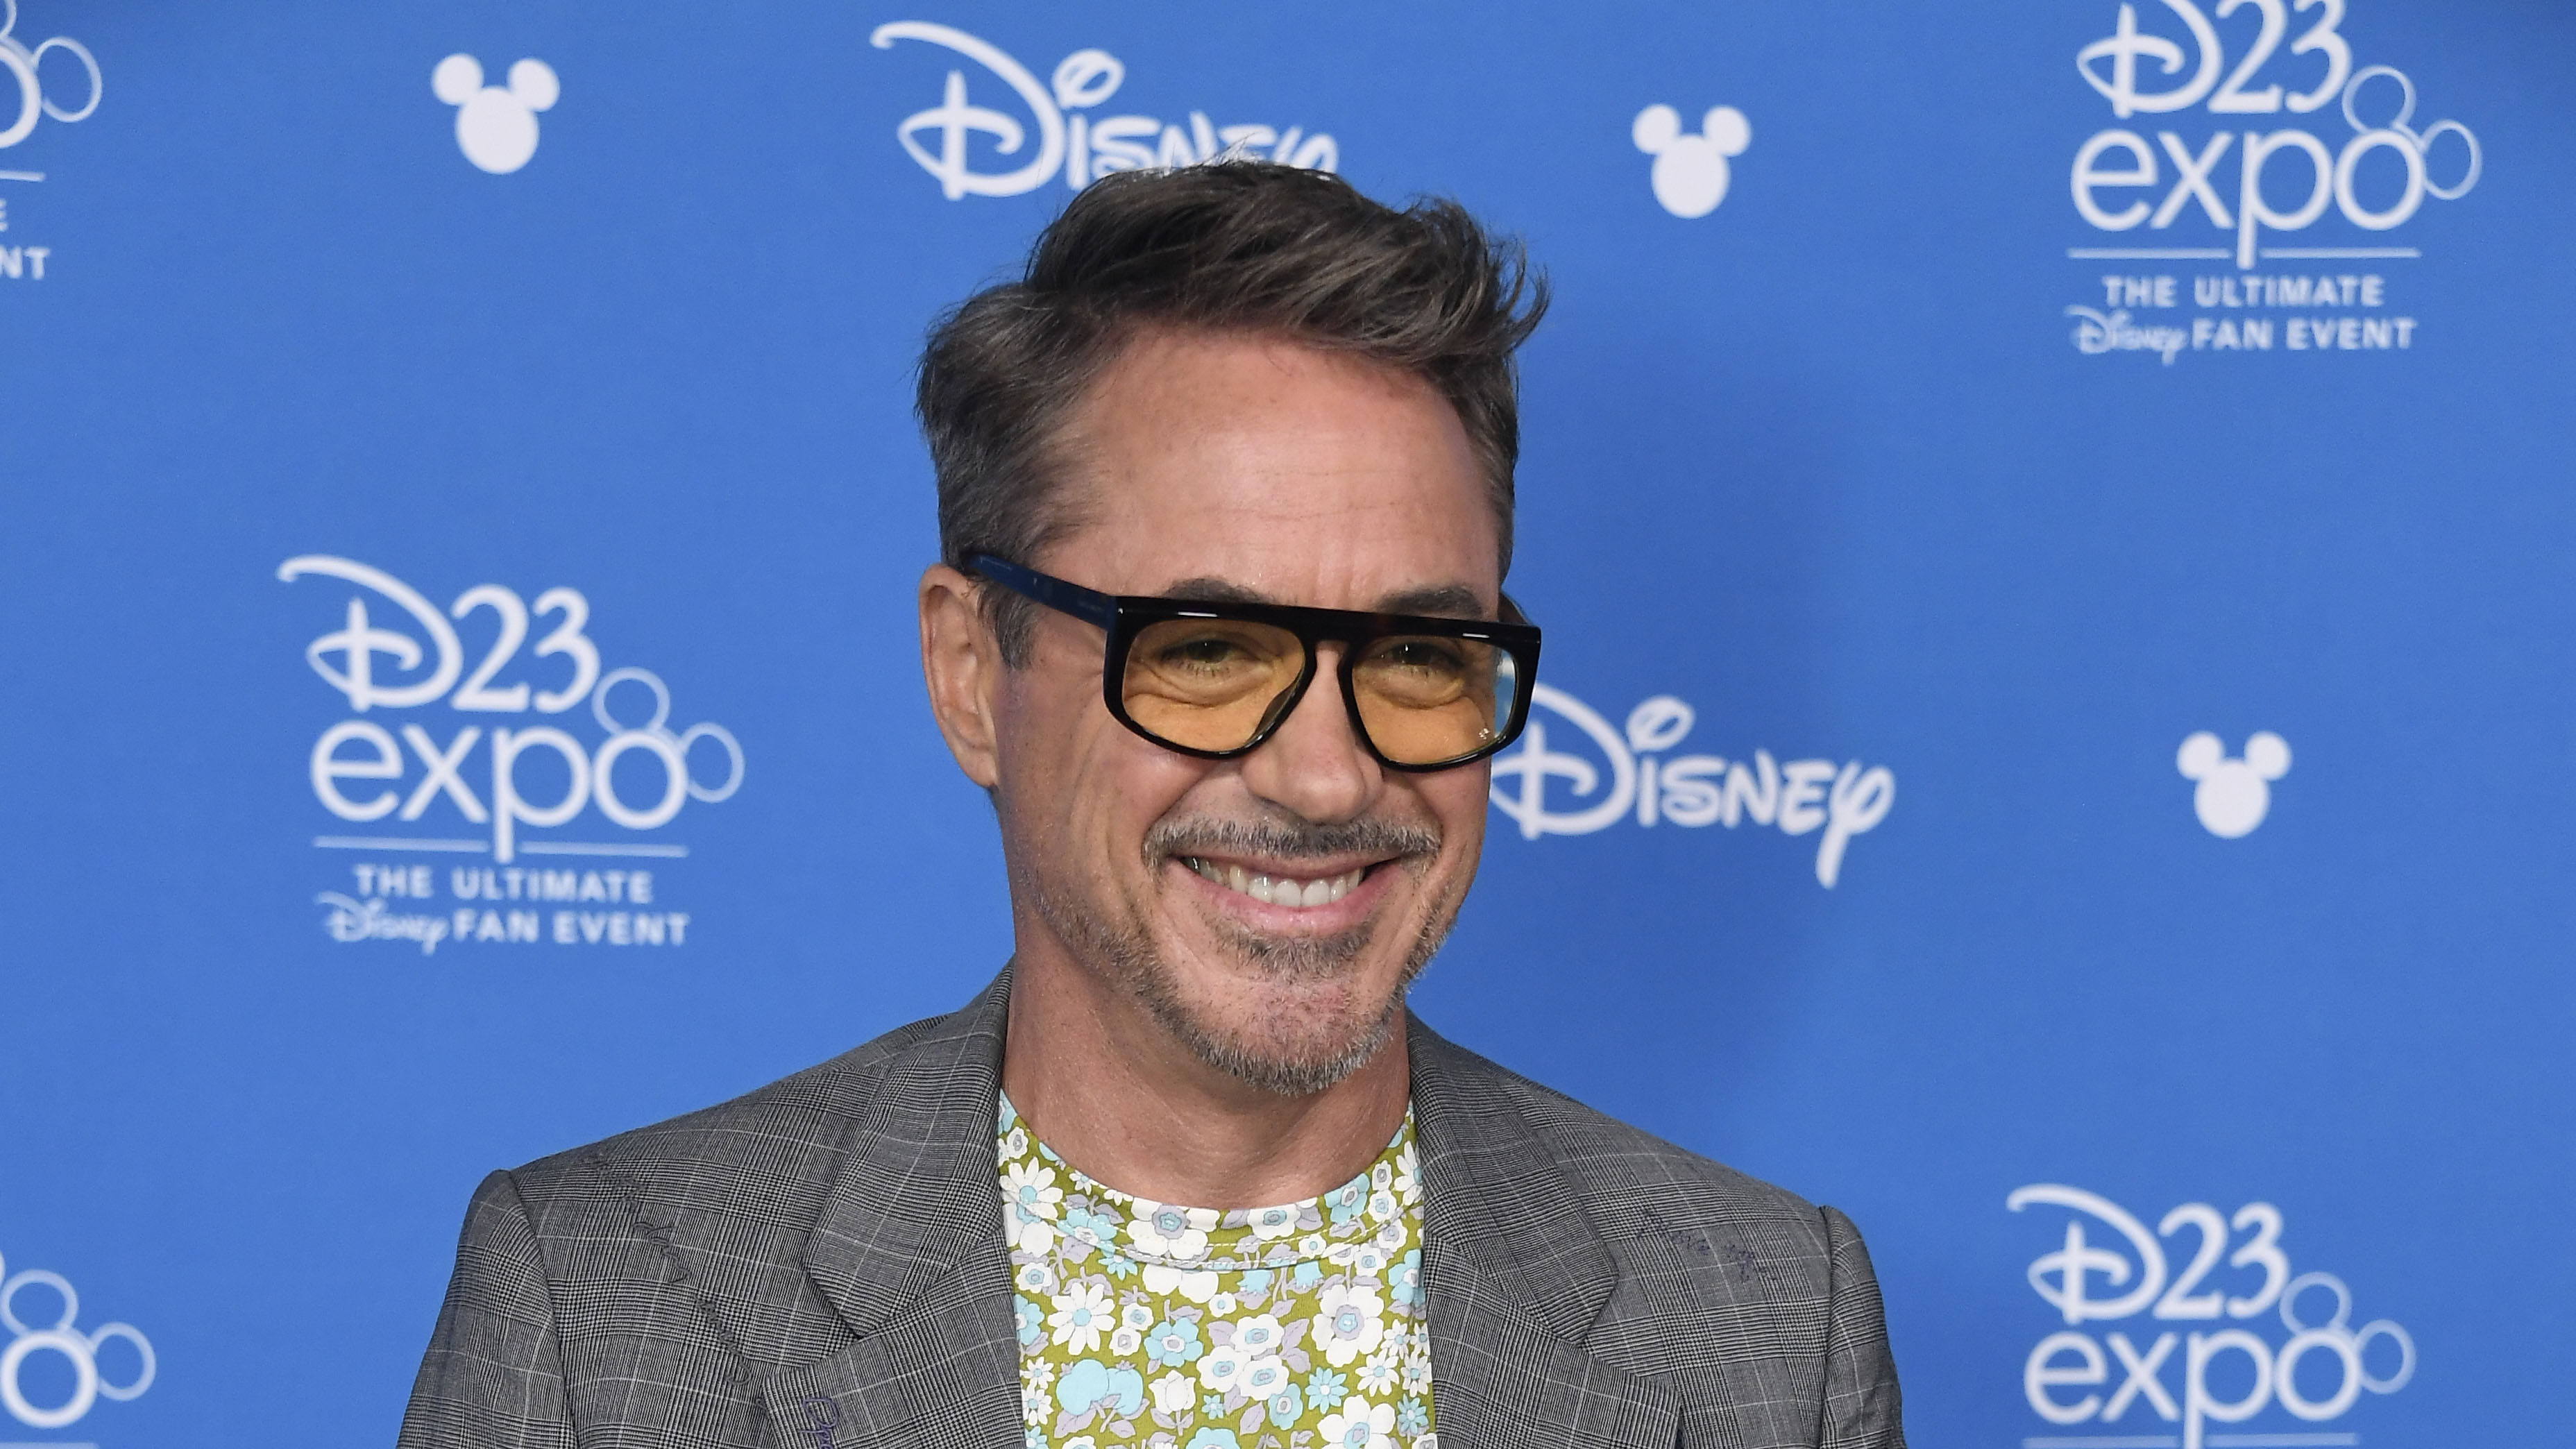 Robert Downey Jr. stars in first post-Marvel role: Dr. Dolittle